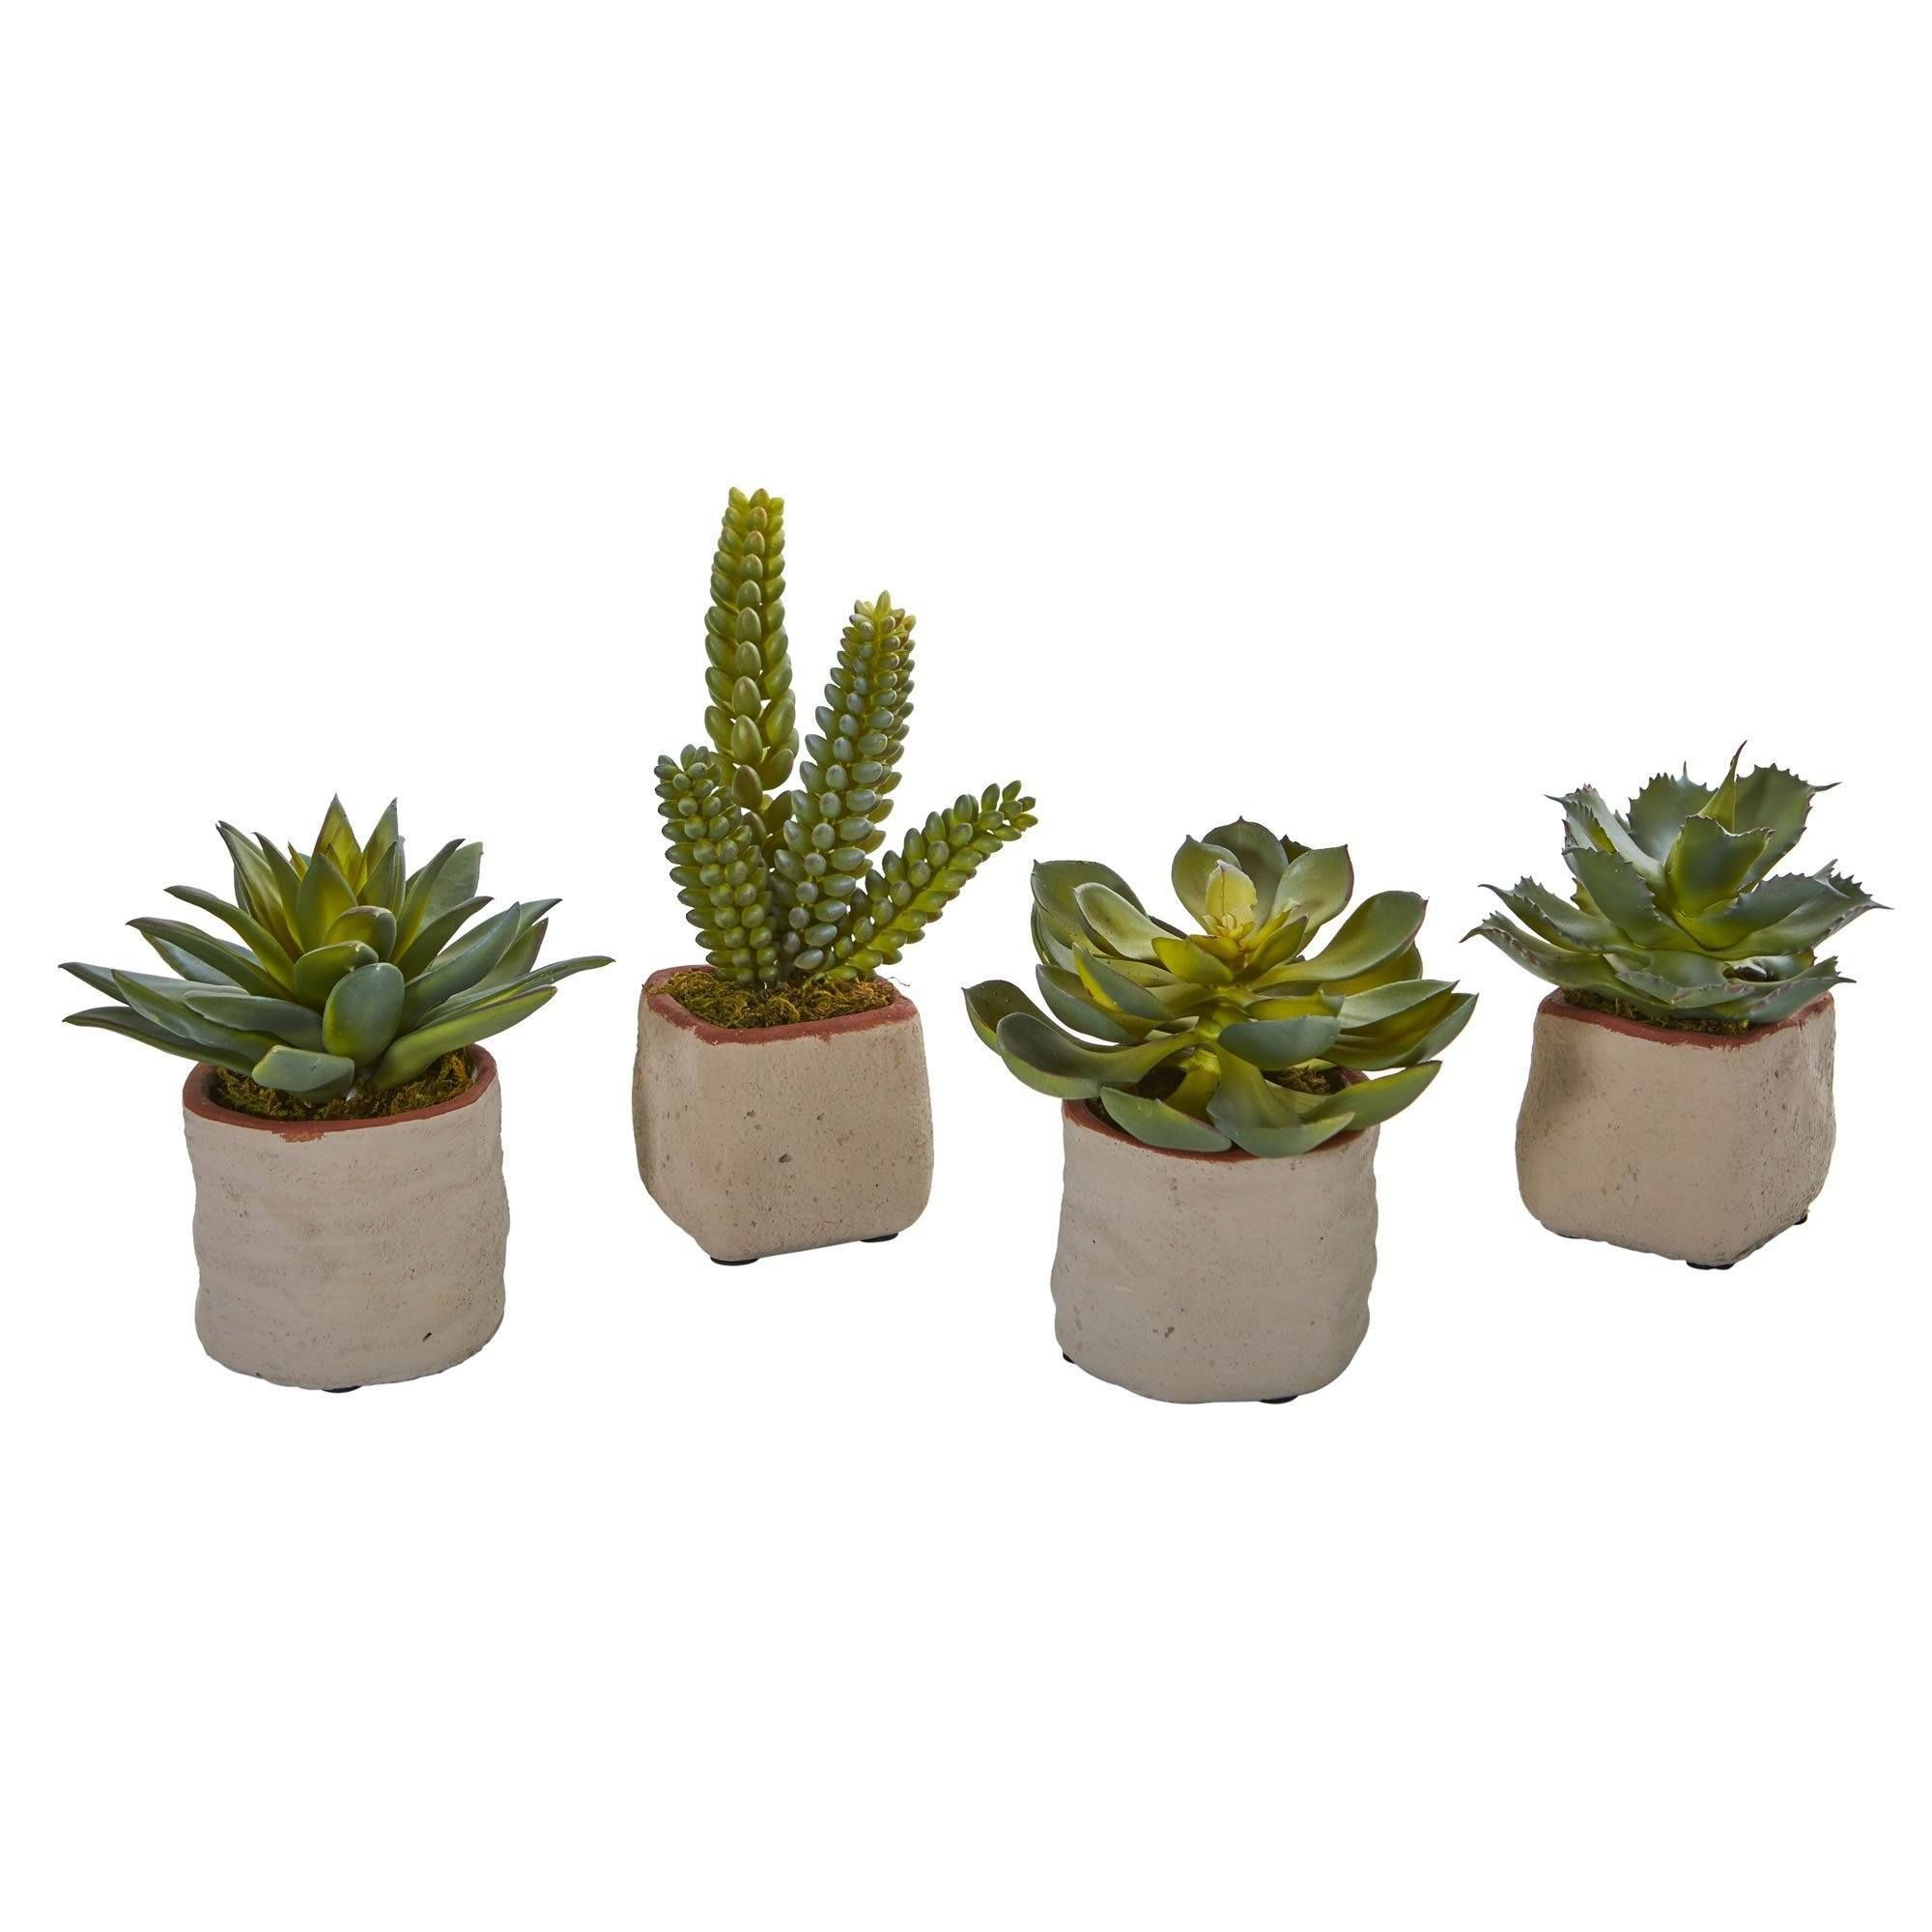 Mixed Succulent Artificial Plant Set Of 4 In 2020 Plants Artificial Plants Artificial Succulents